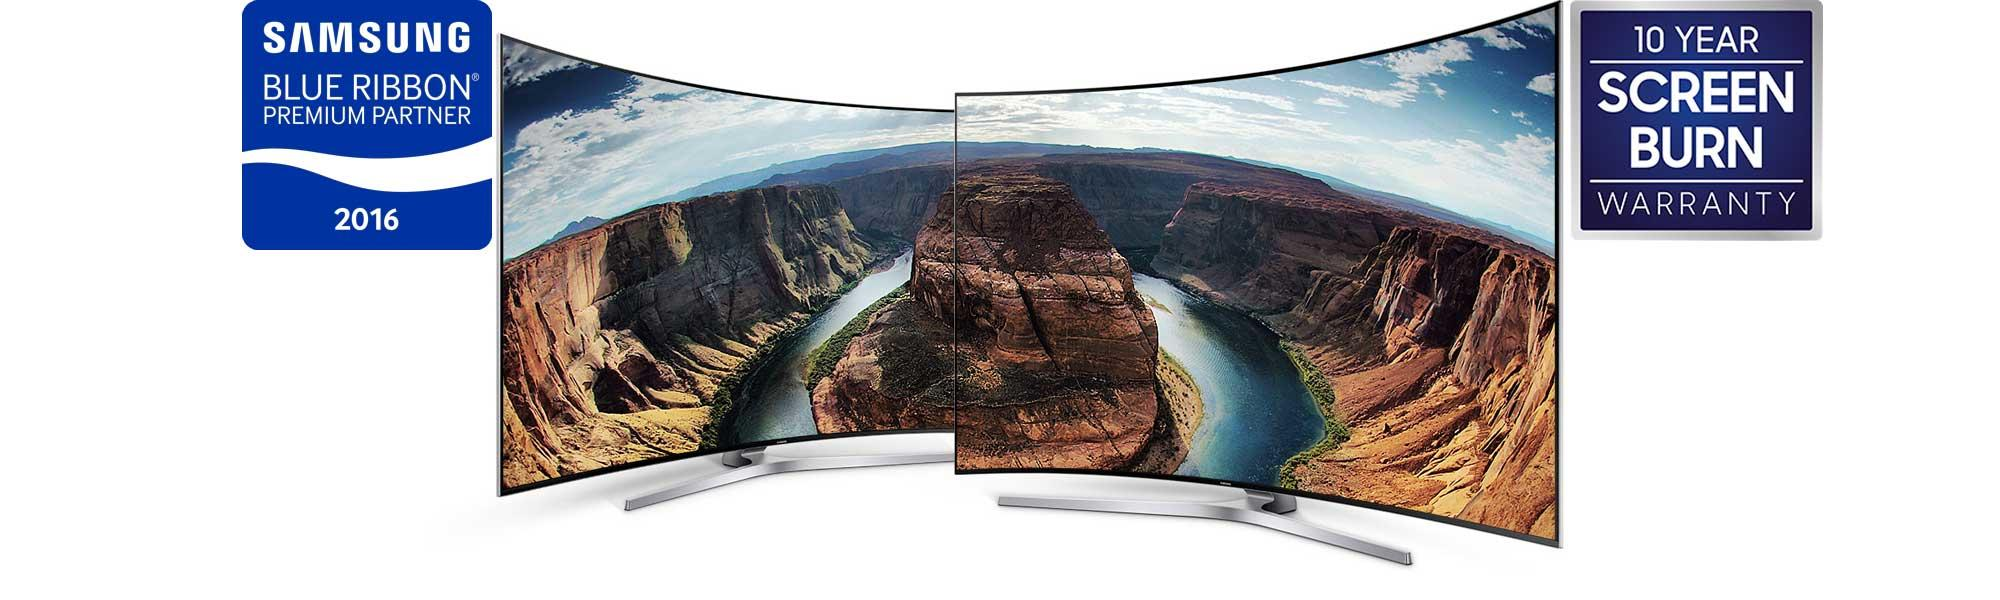 "Samsung UE65KS9500 65"" 4K HDR Ultra HD Curved Quantum Dot TV"